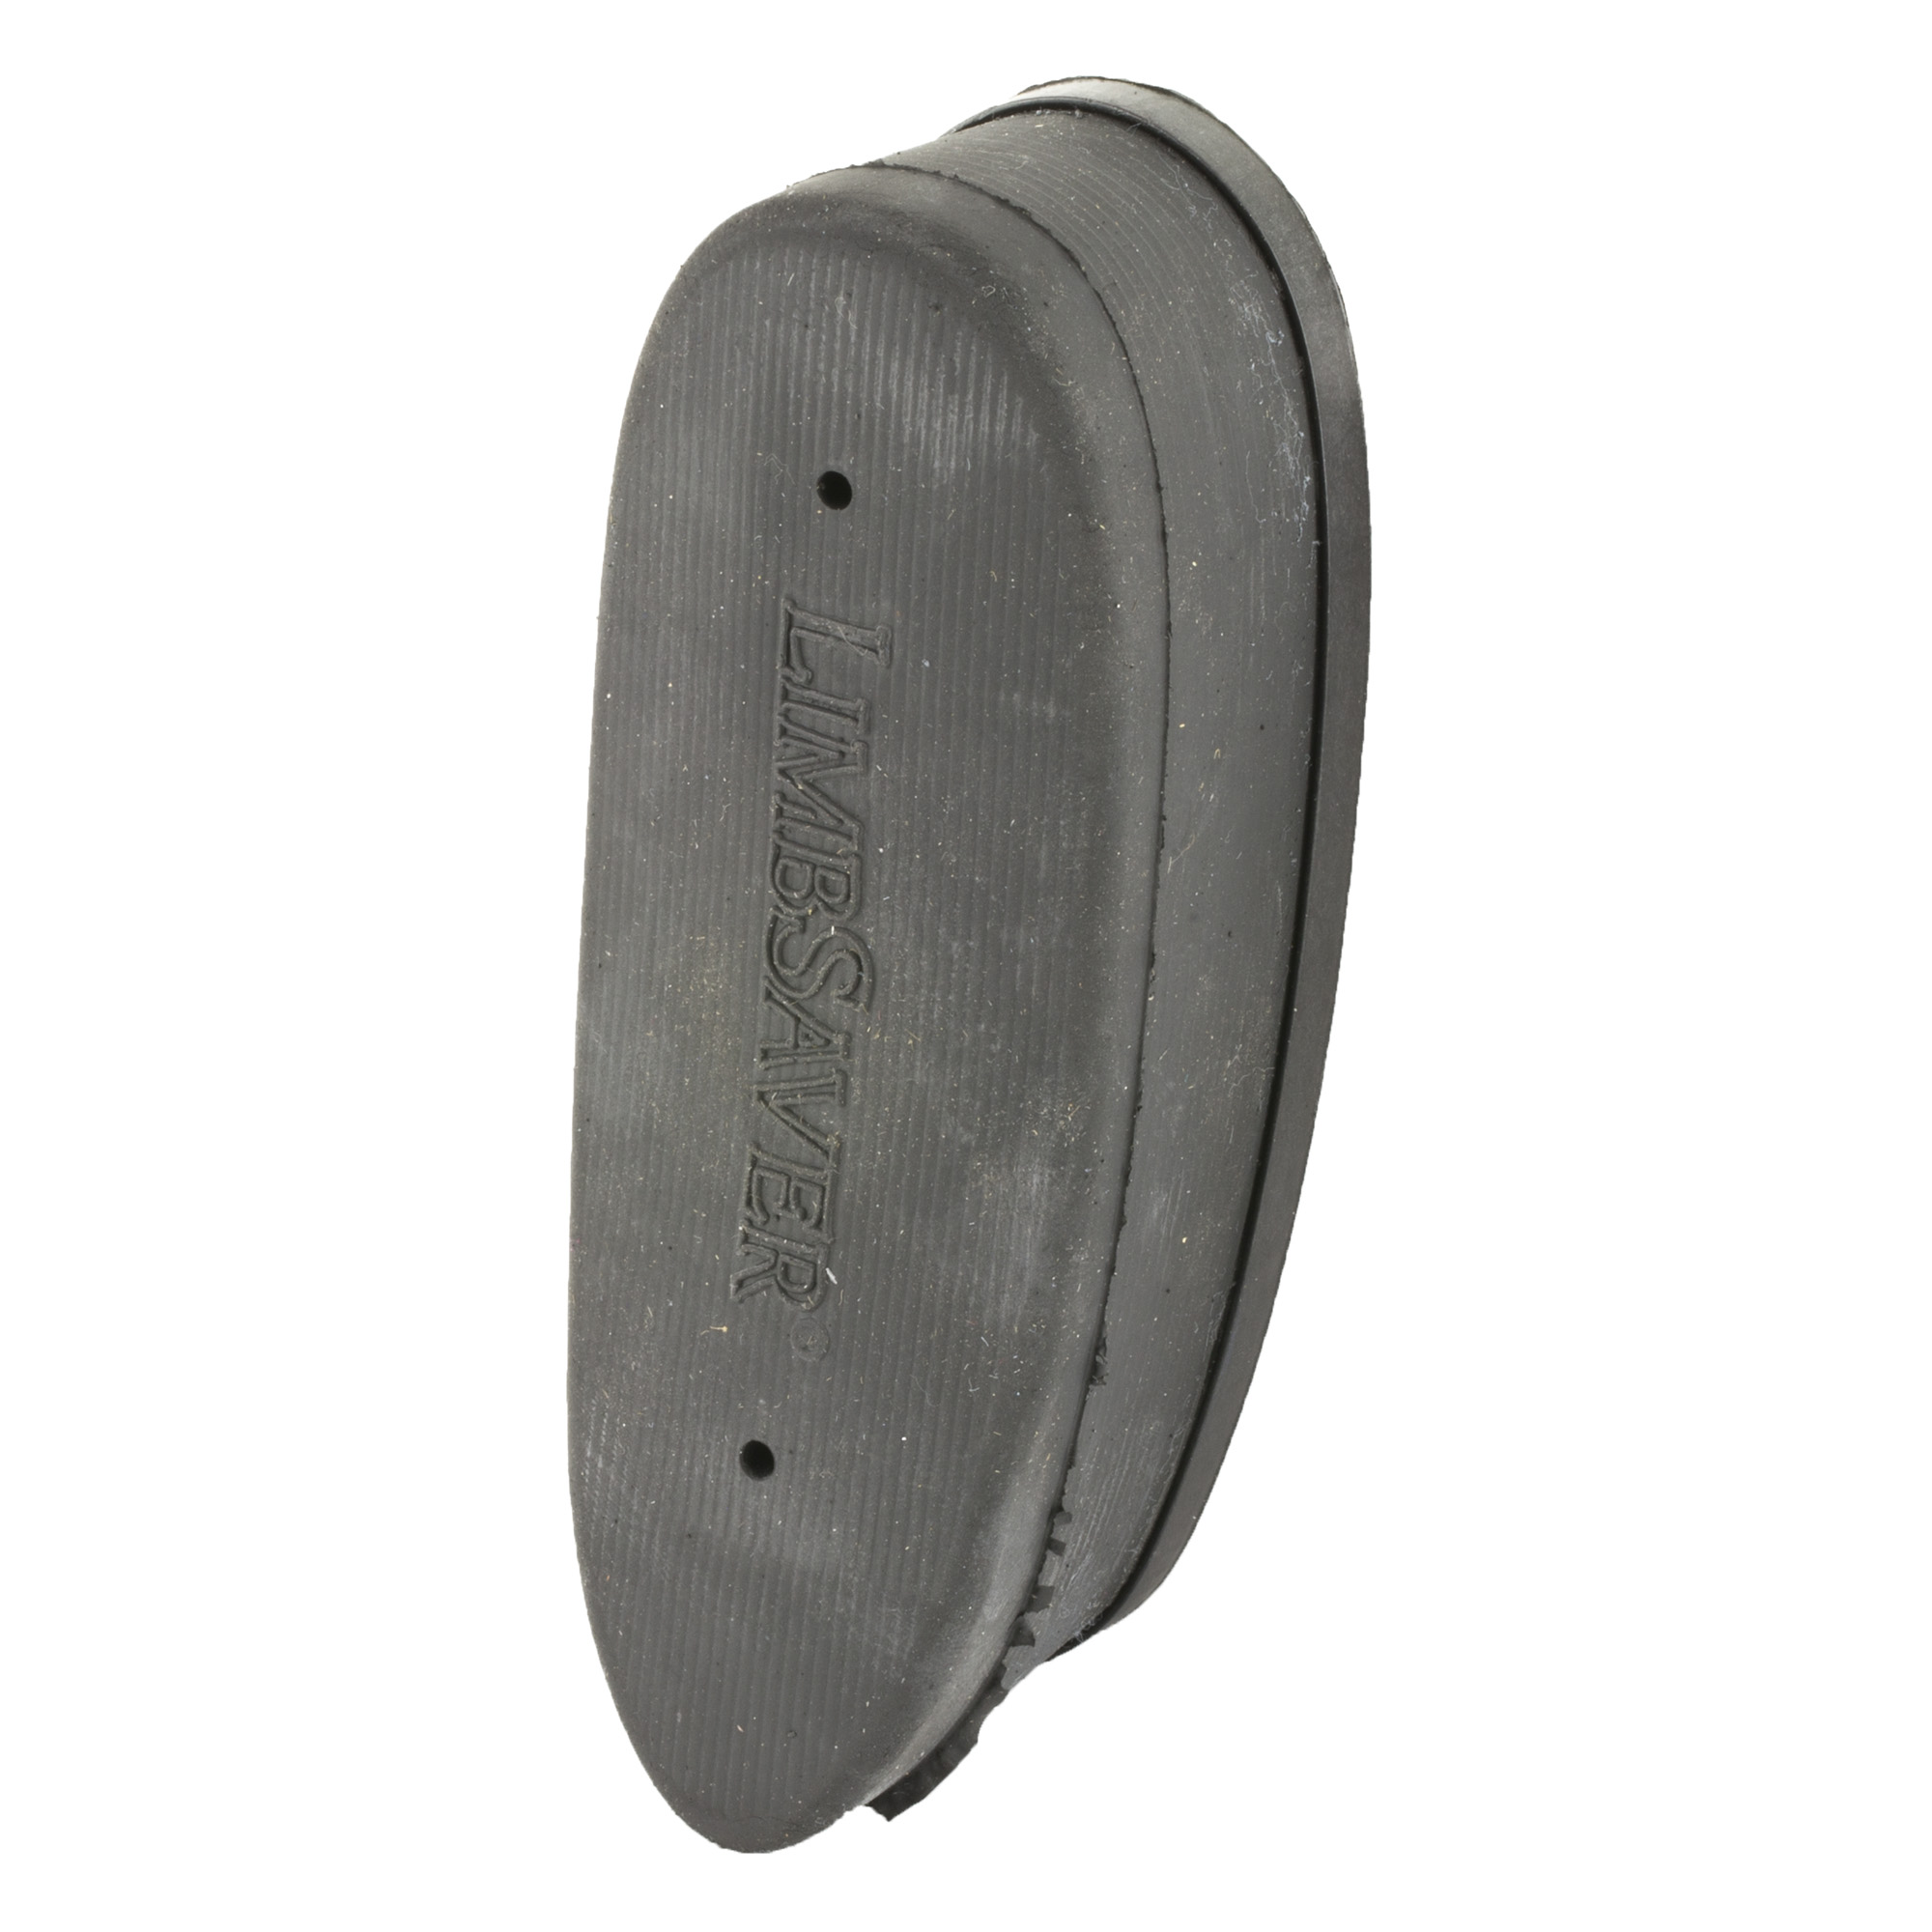 """LimbSaver's Nitro Grind-to-fit Recoil Pad is designed with added cushion to protect your shoulder from the intense kick from safari-grade calibers. This pad is also great for shooters who are especially sensitive to felt recoil and need the added protection. The Nitro Grind-to-Fit Recoil Pad is 1 1/2"""" inches thick. The Nitro Grind-to-Fit Recoil Pad will protect you from the fiercest"""" most violent rifle kickback. This top-of-the-line pad reduces up to 80% of felt recoil. With your shoulder protected"""" you can shoot confidently without flinching for hesitation"""" for a more accurate shot. Like all Grind-to-Fit Recoil Pads"""" this model can be altered to perfectly fit your gun stock."""